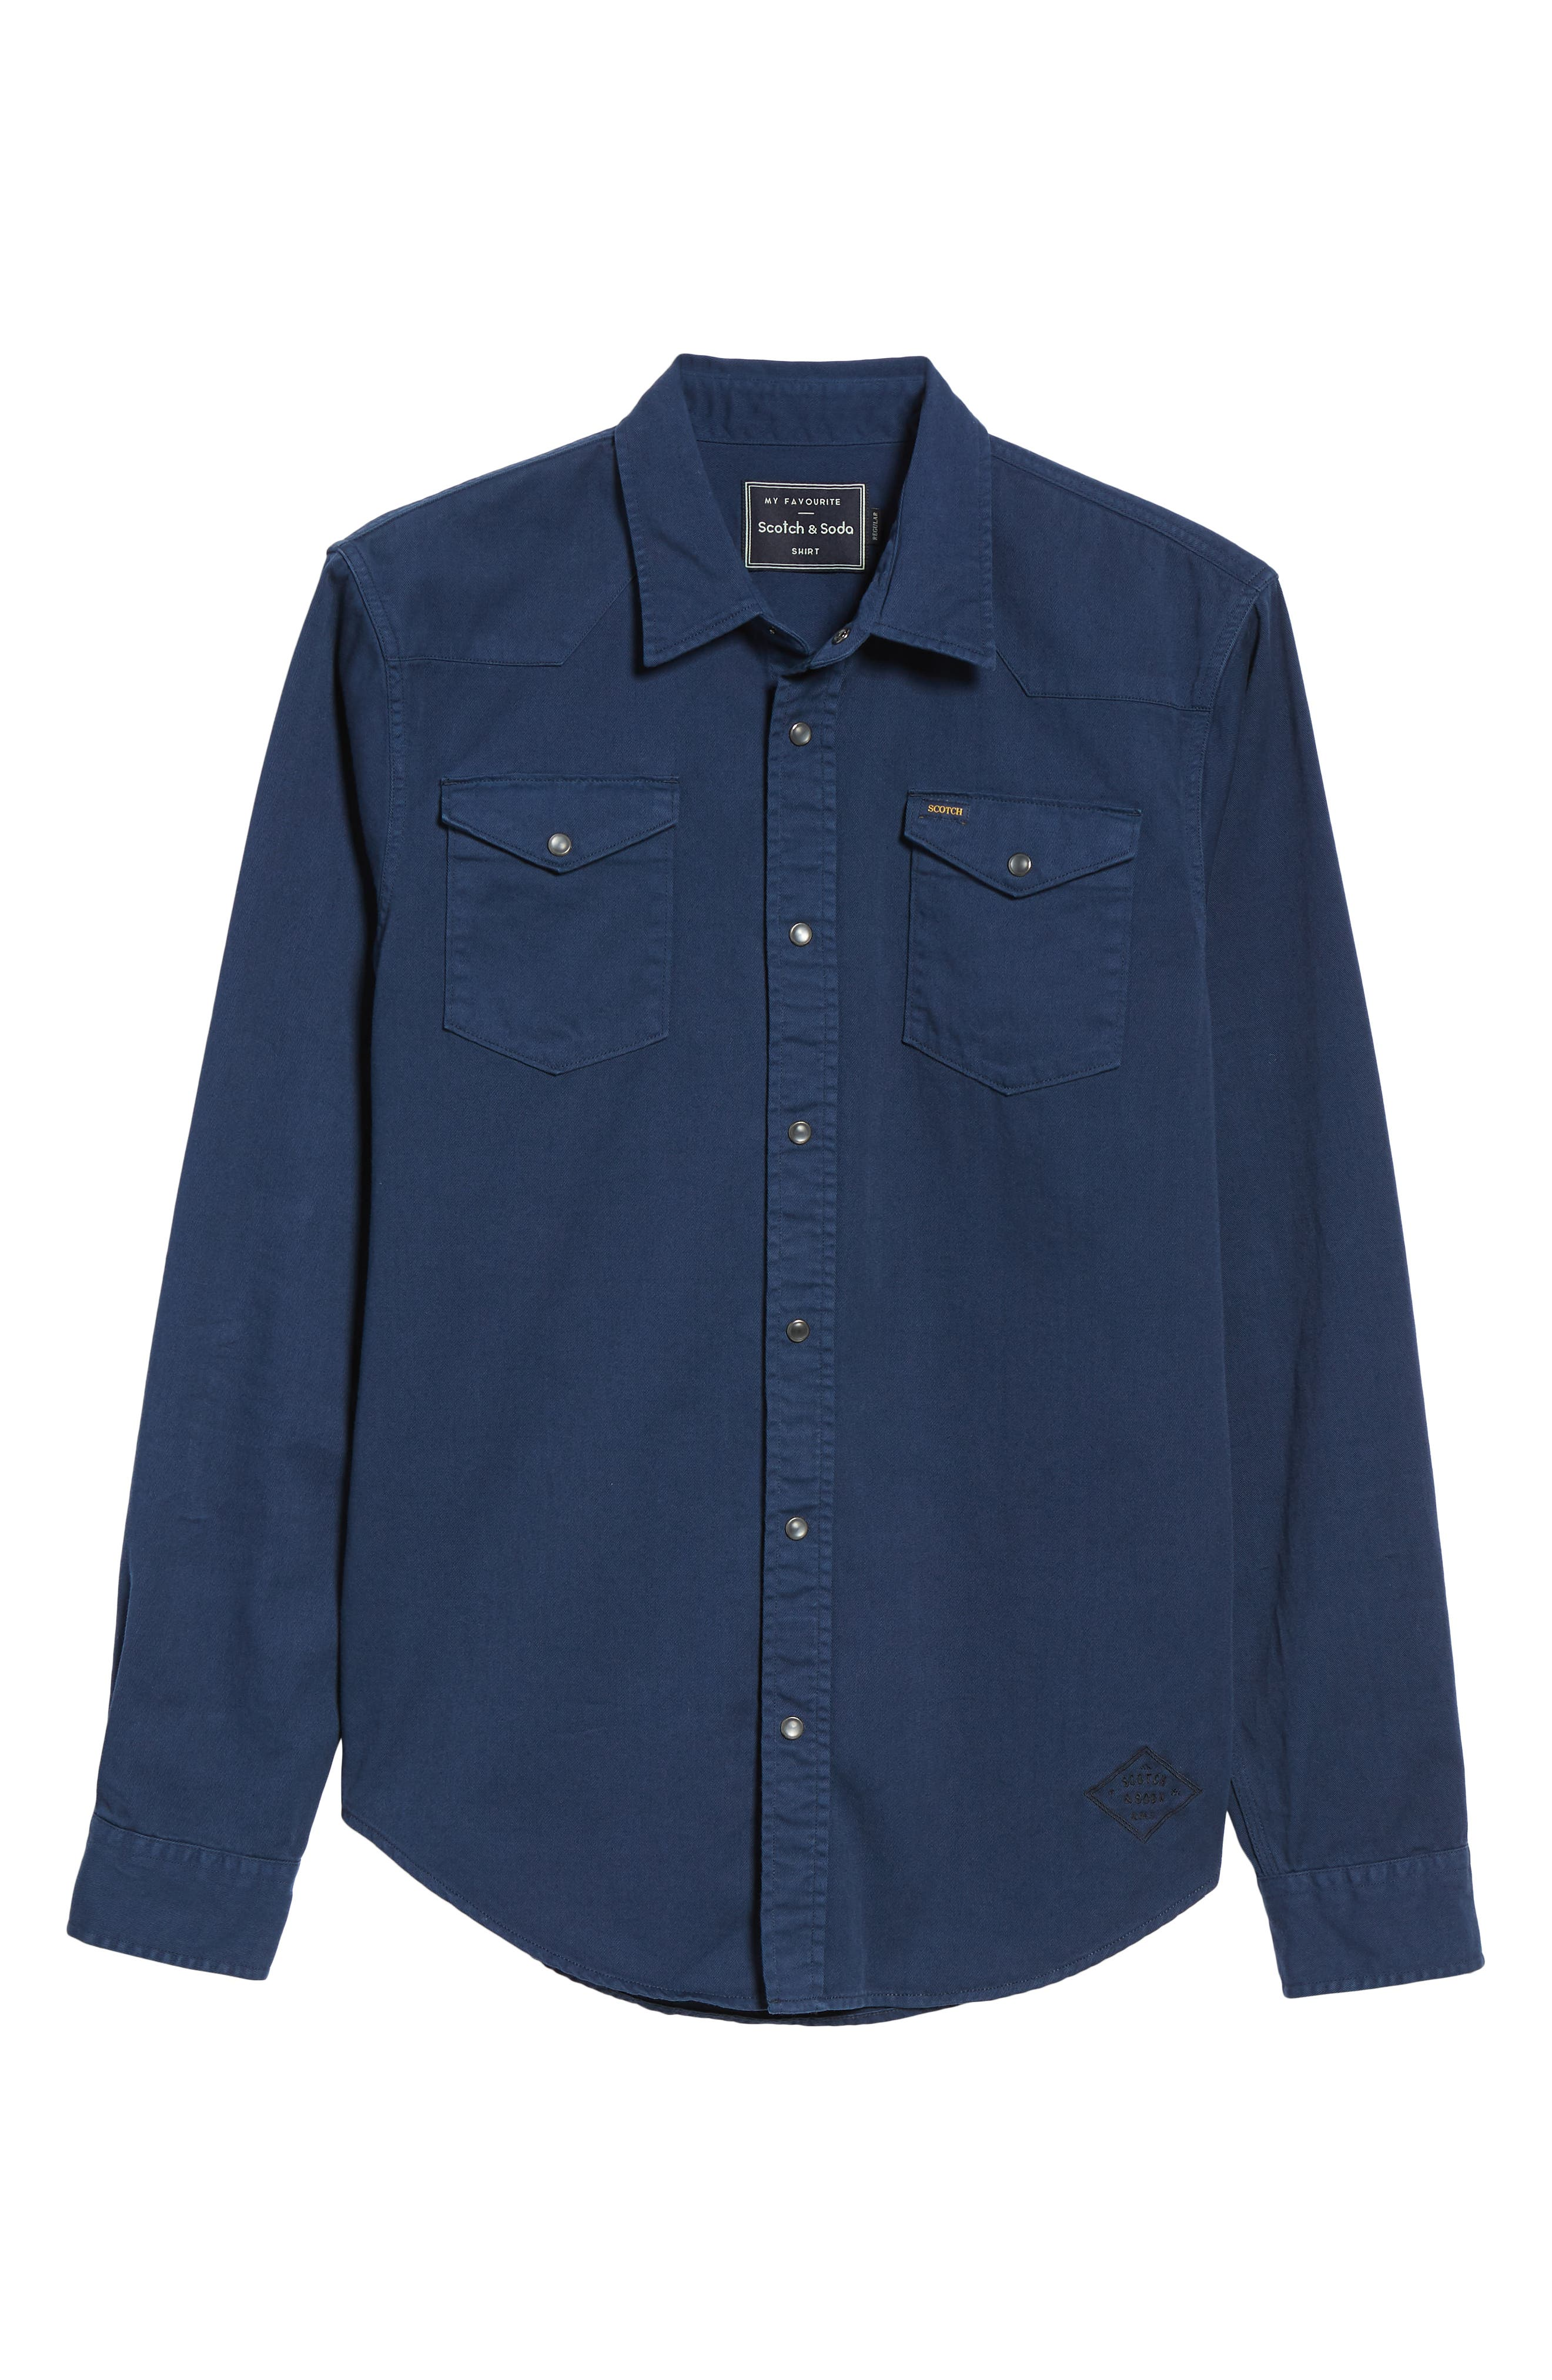 Regular Fit Garment Dyed Shirt,                             Alternate thumbnail 5, color,                             DENIM BLUE